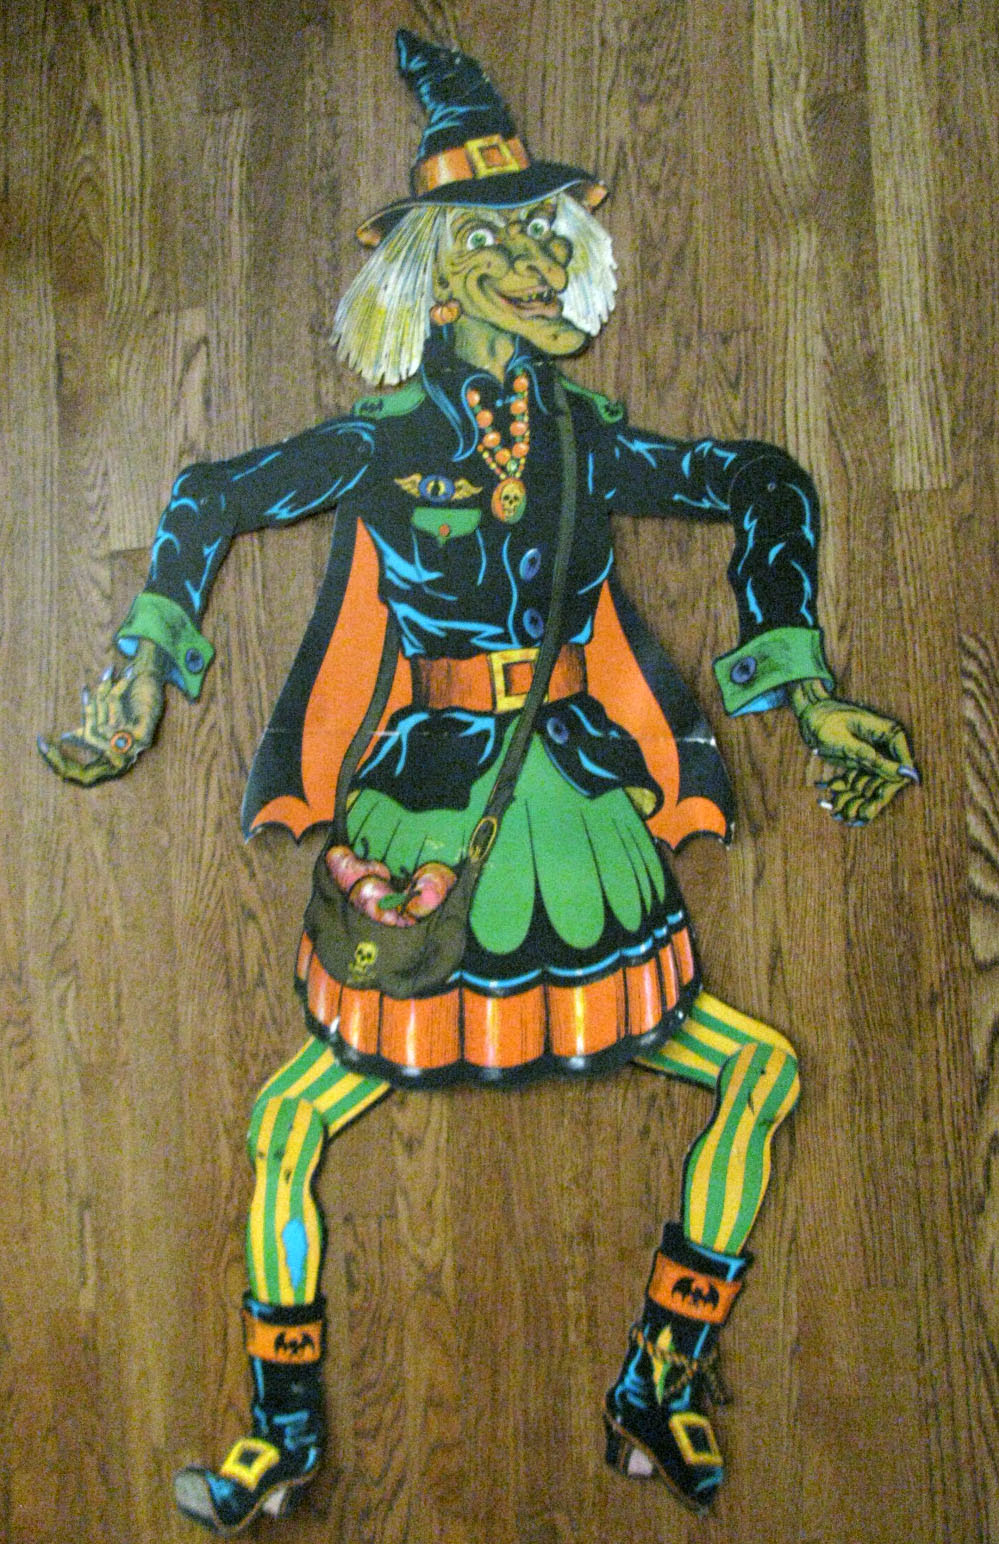 3-D Monster: Halloween Decorations From My Youth!